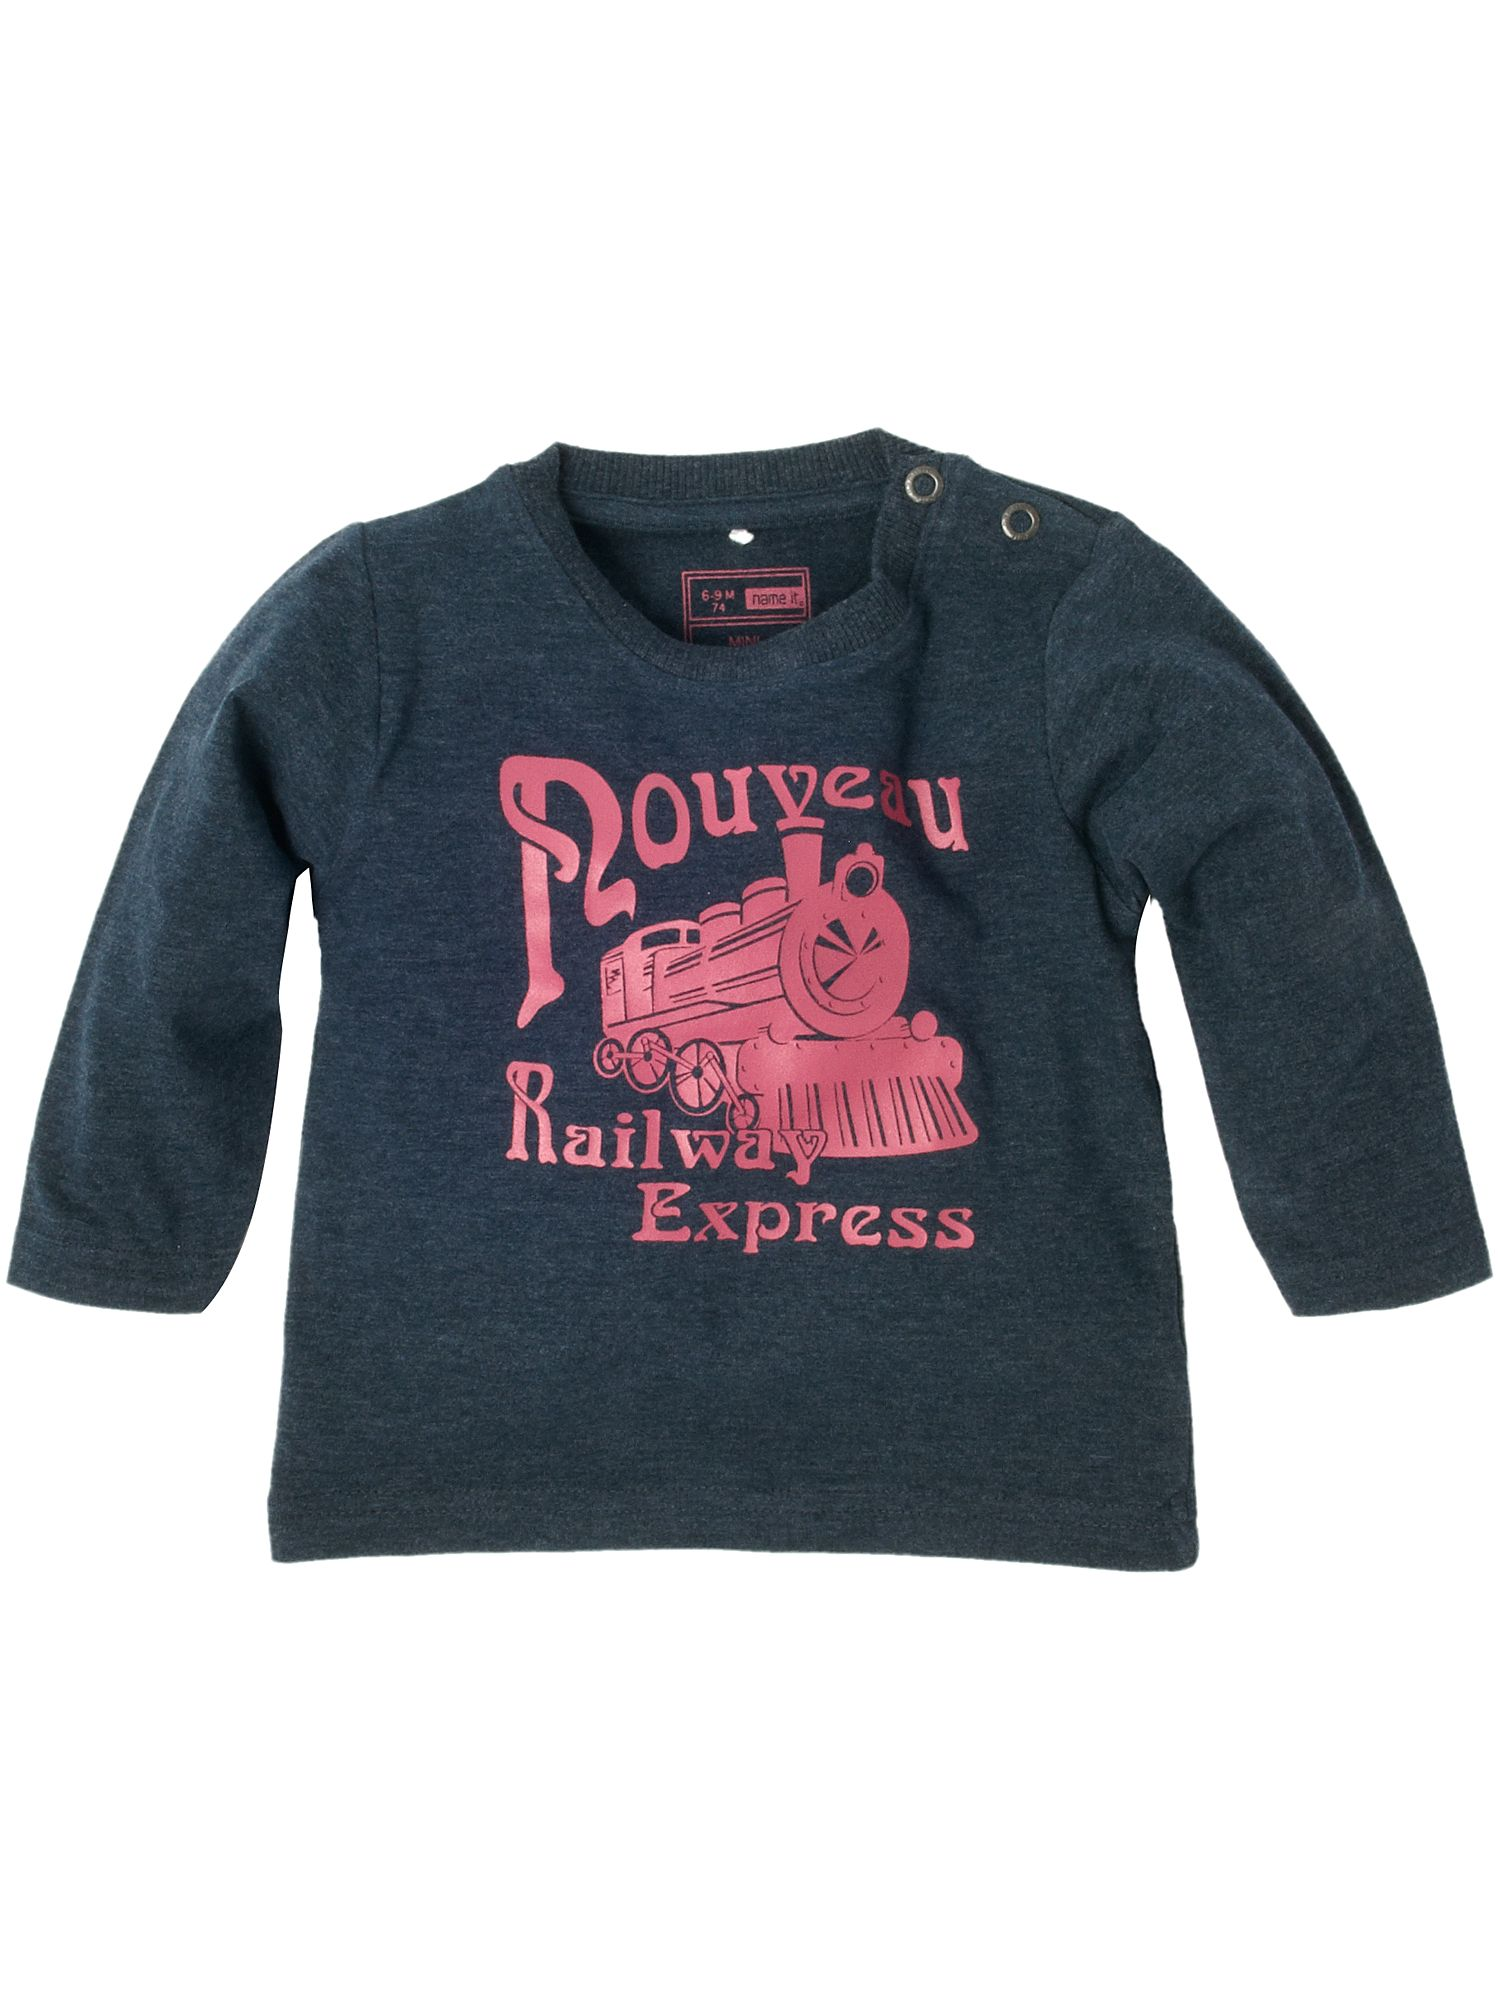 Name It Long-sleeved railway express printed T-shirt Navy product image